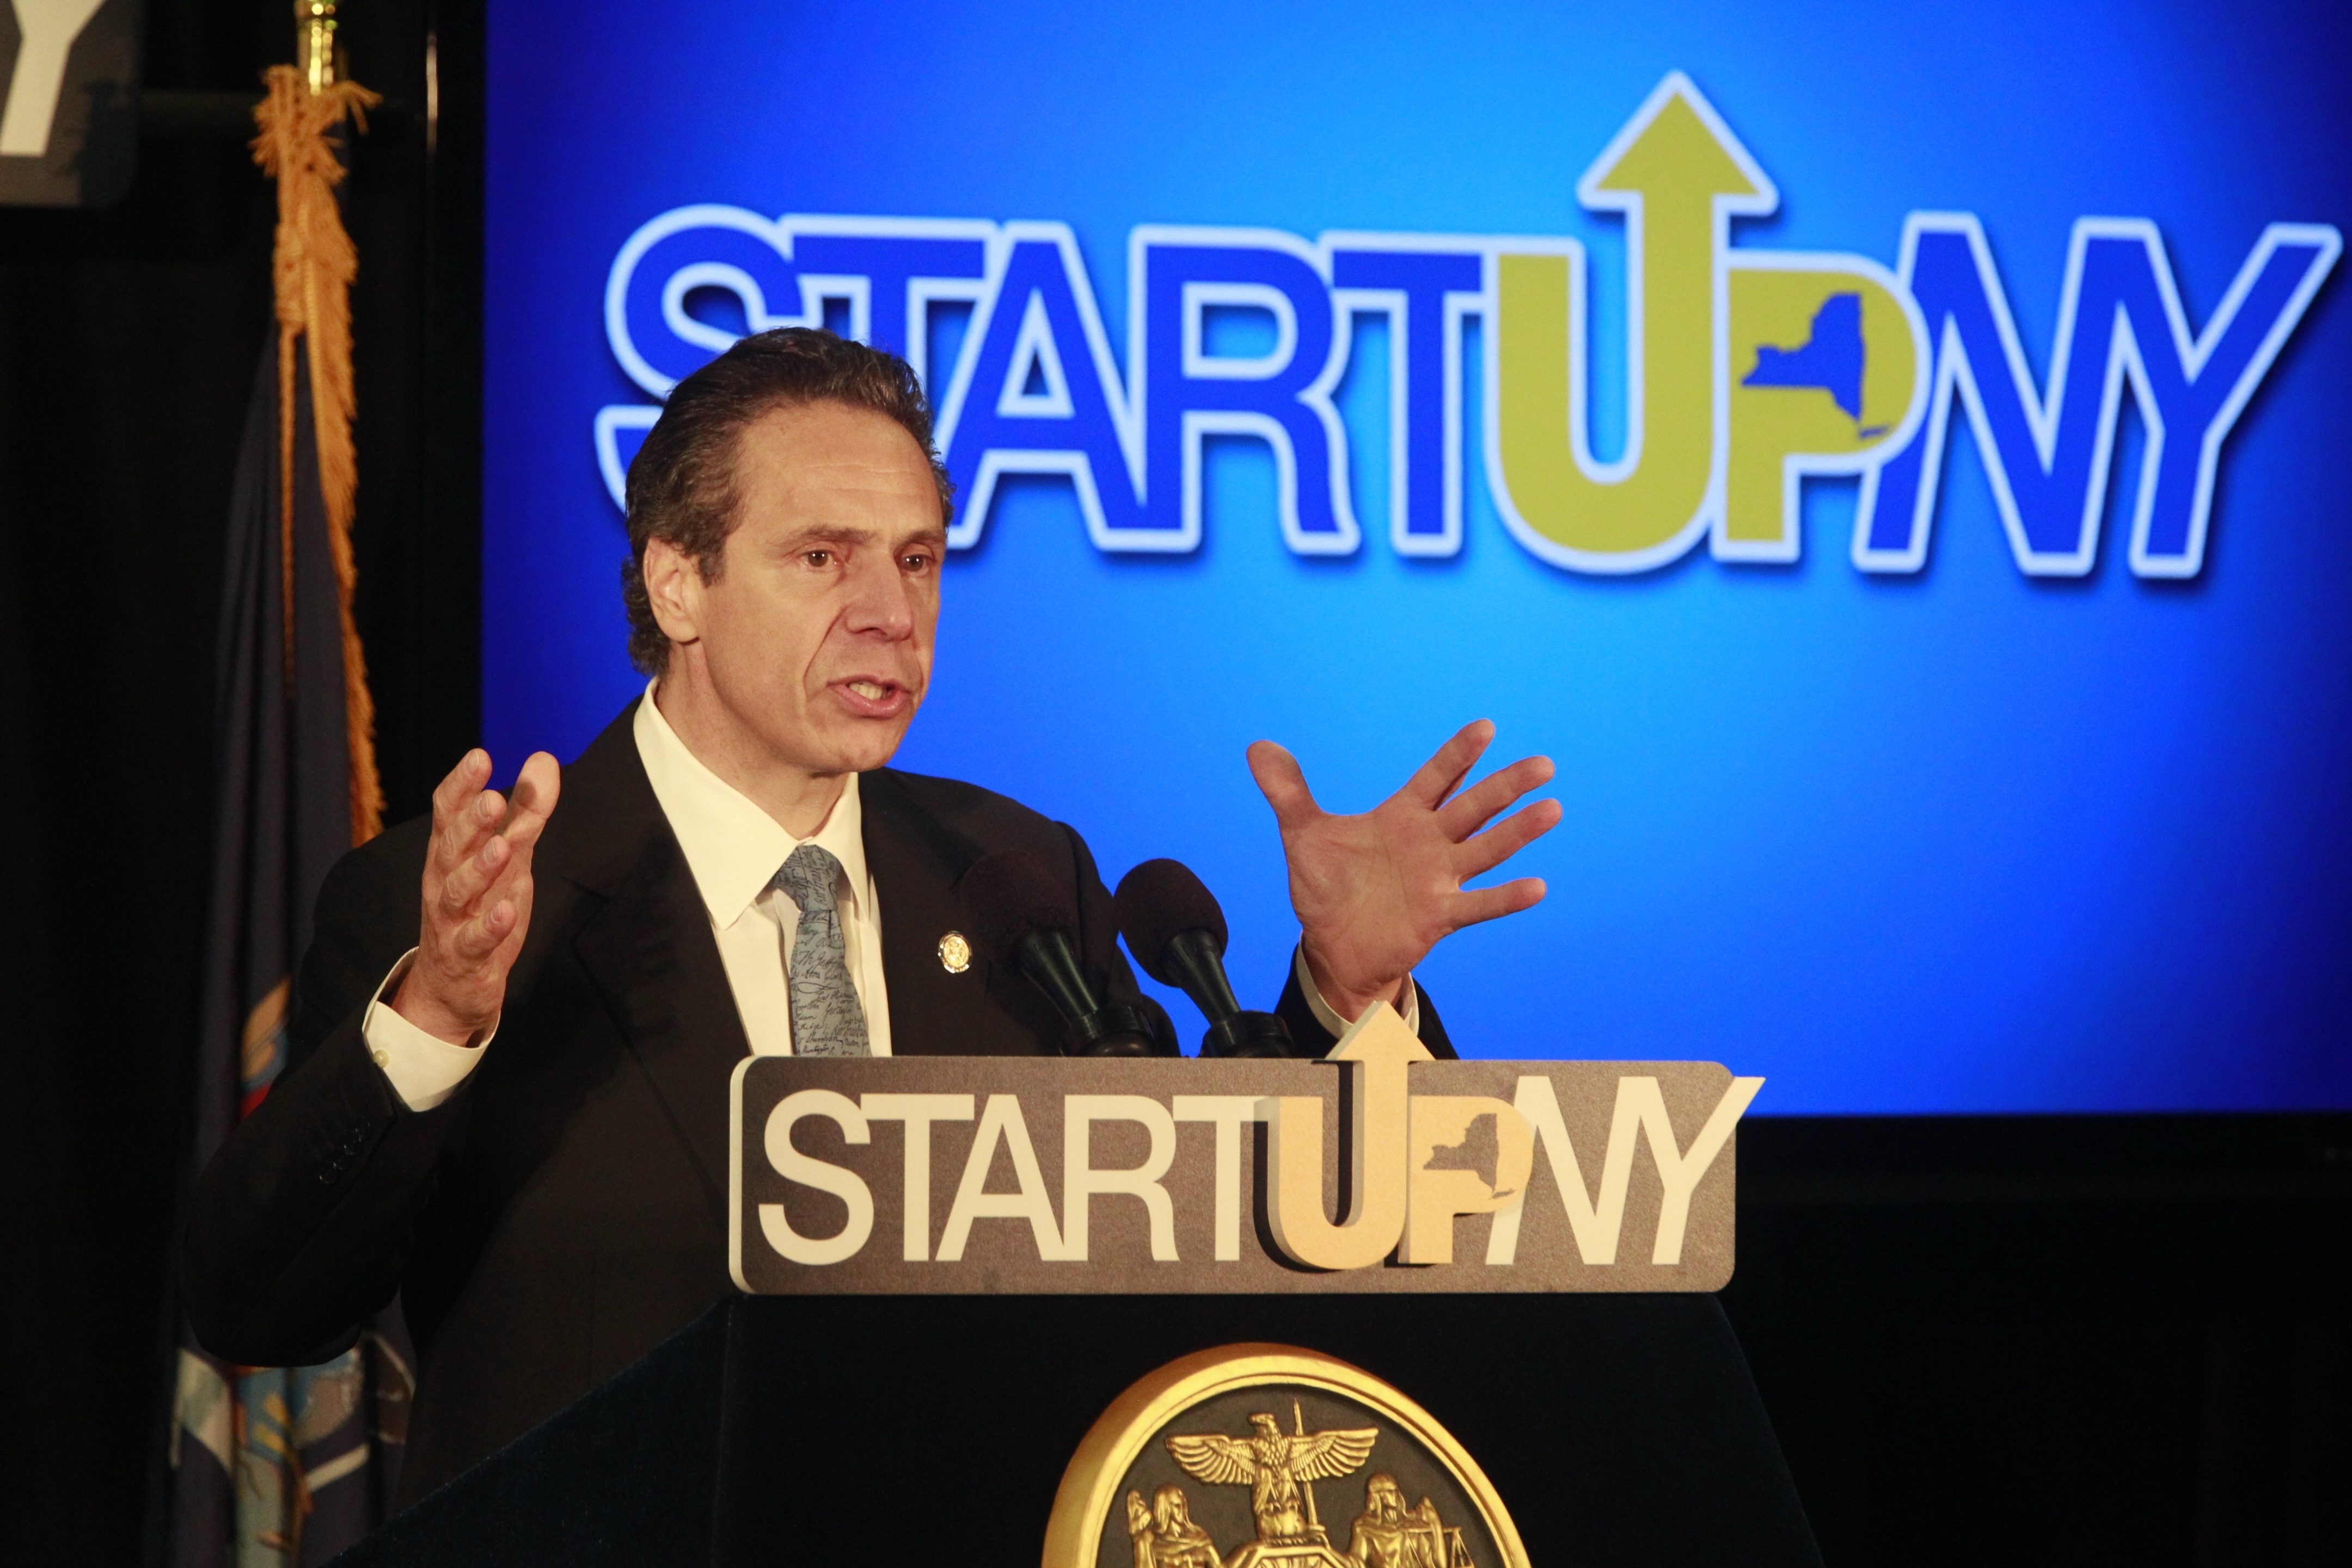 Gov. Andrew Cuomo's administration has spent $211 mil- lion to promote programs, but comptroller isn't impressed.